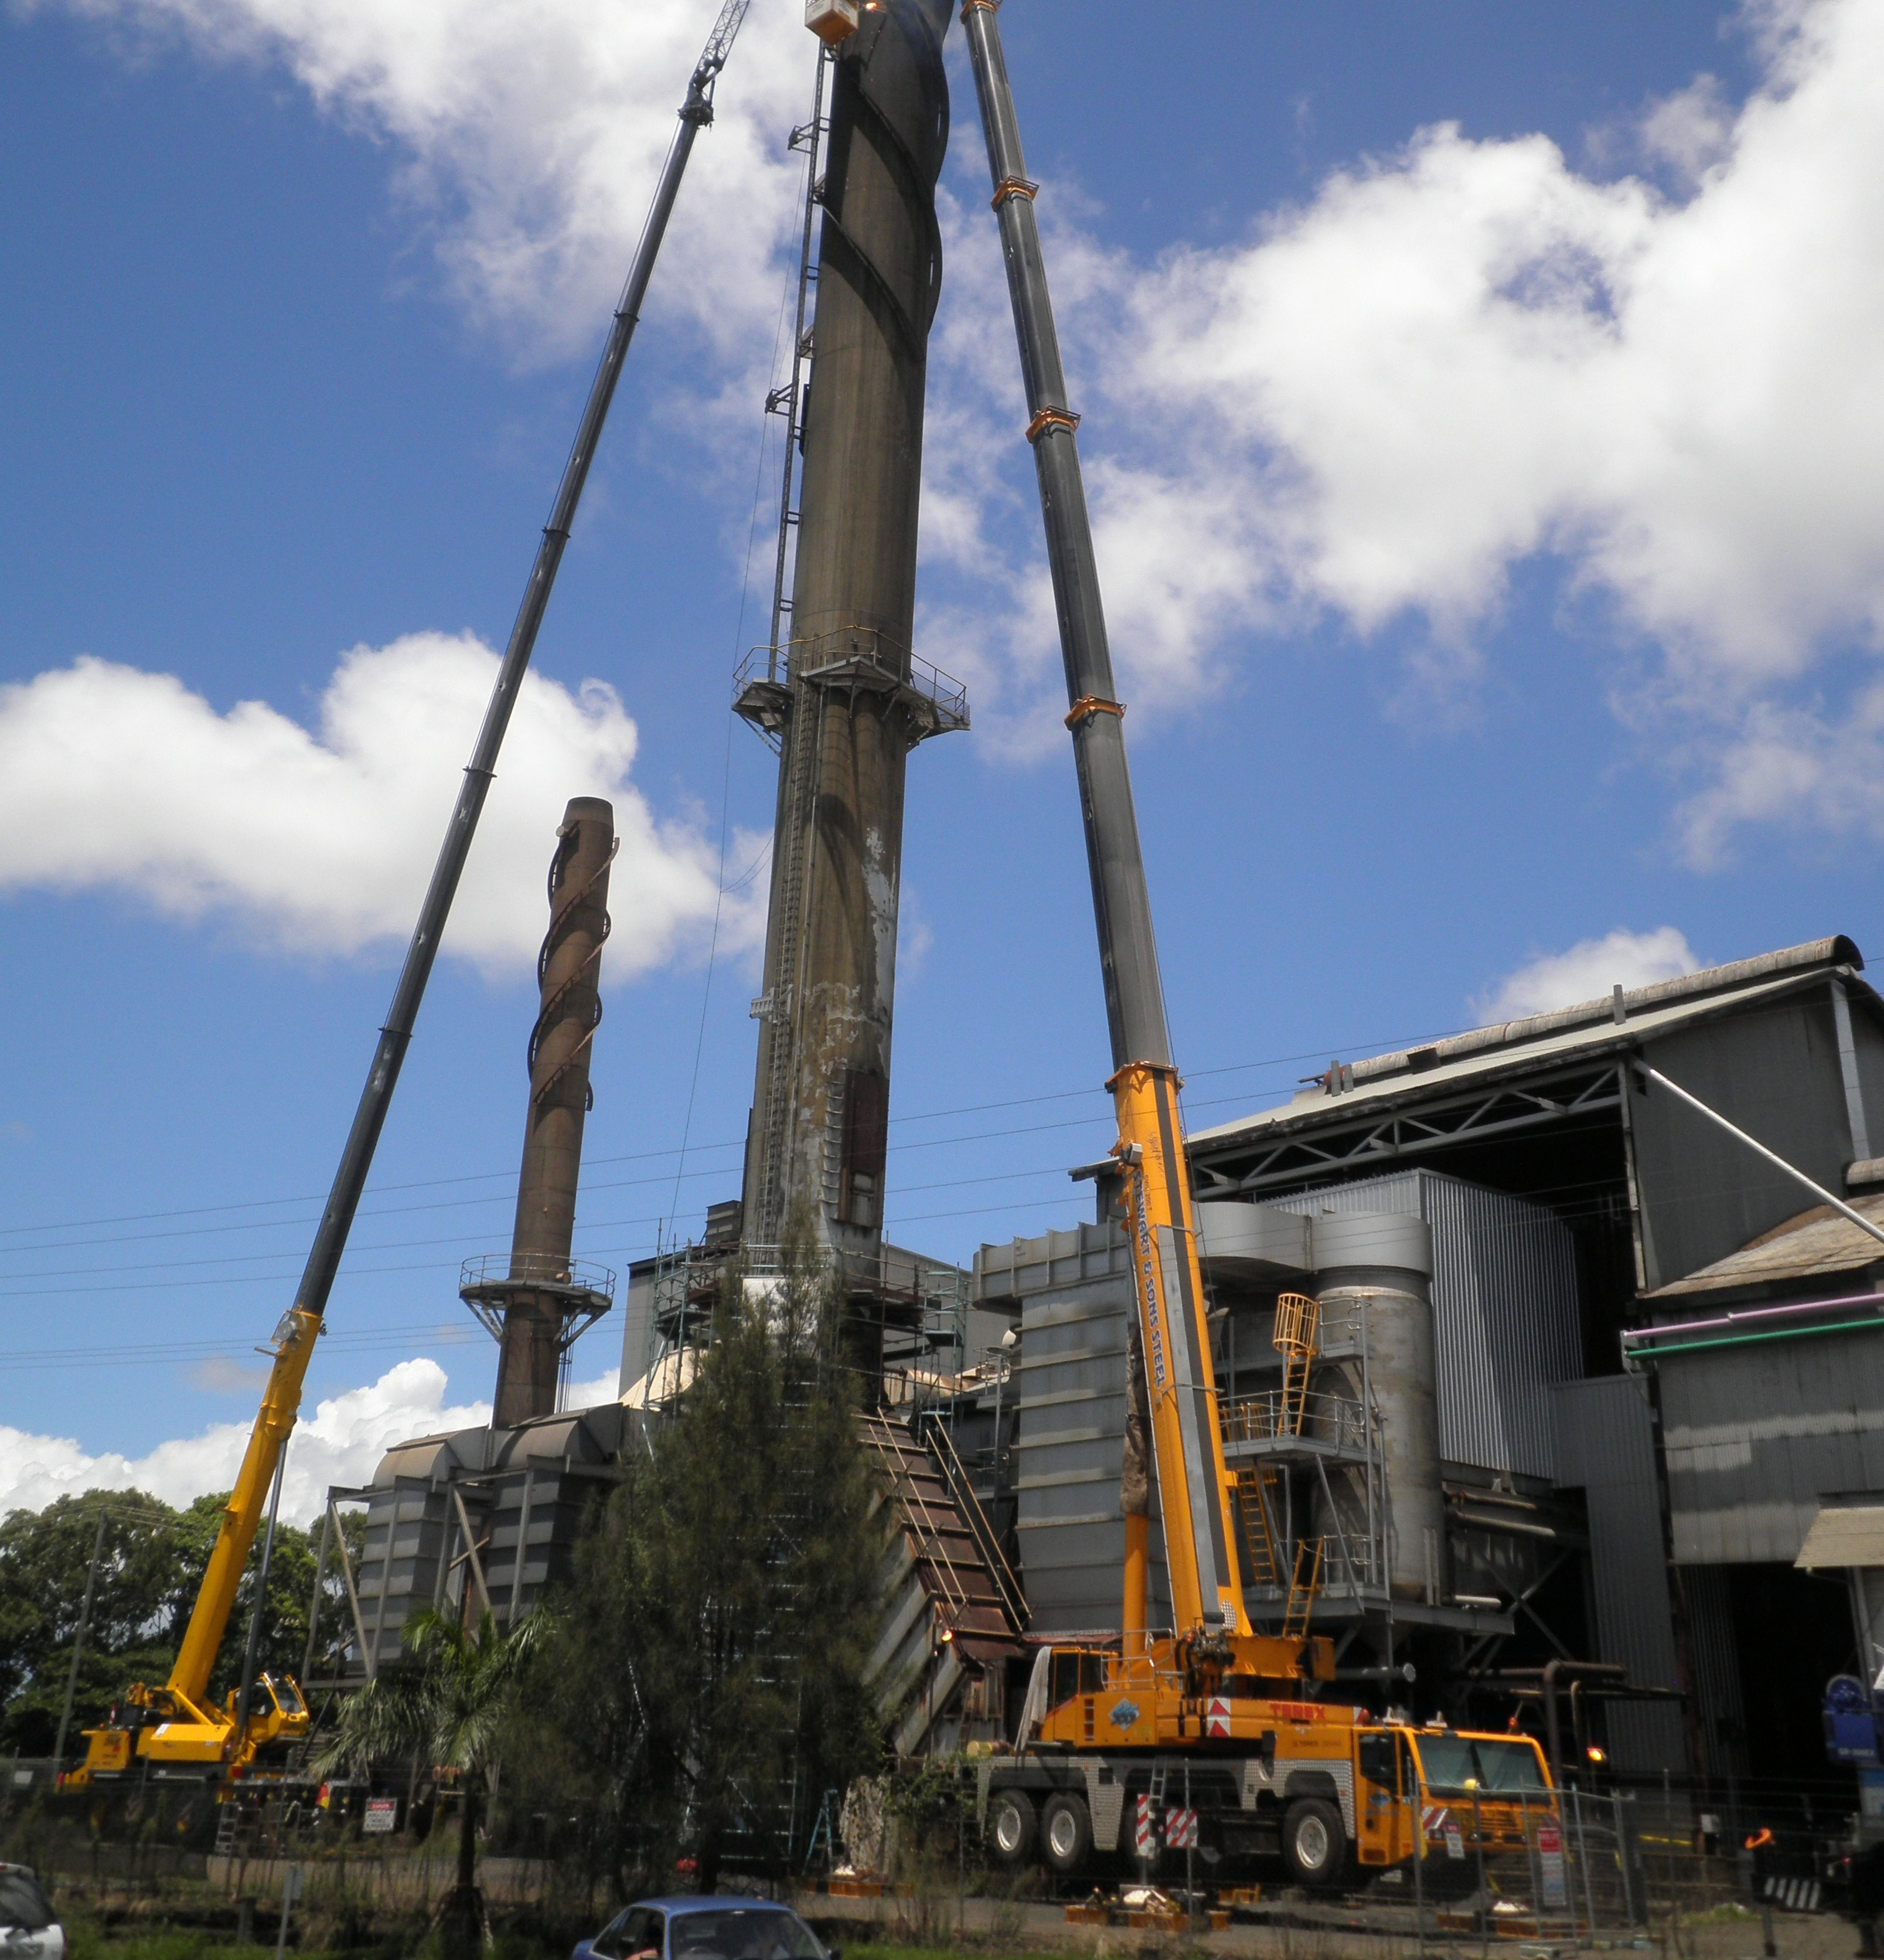 200t Demag All Terrain Crane